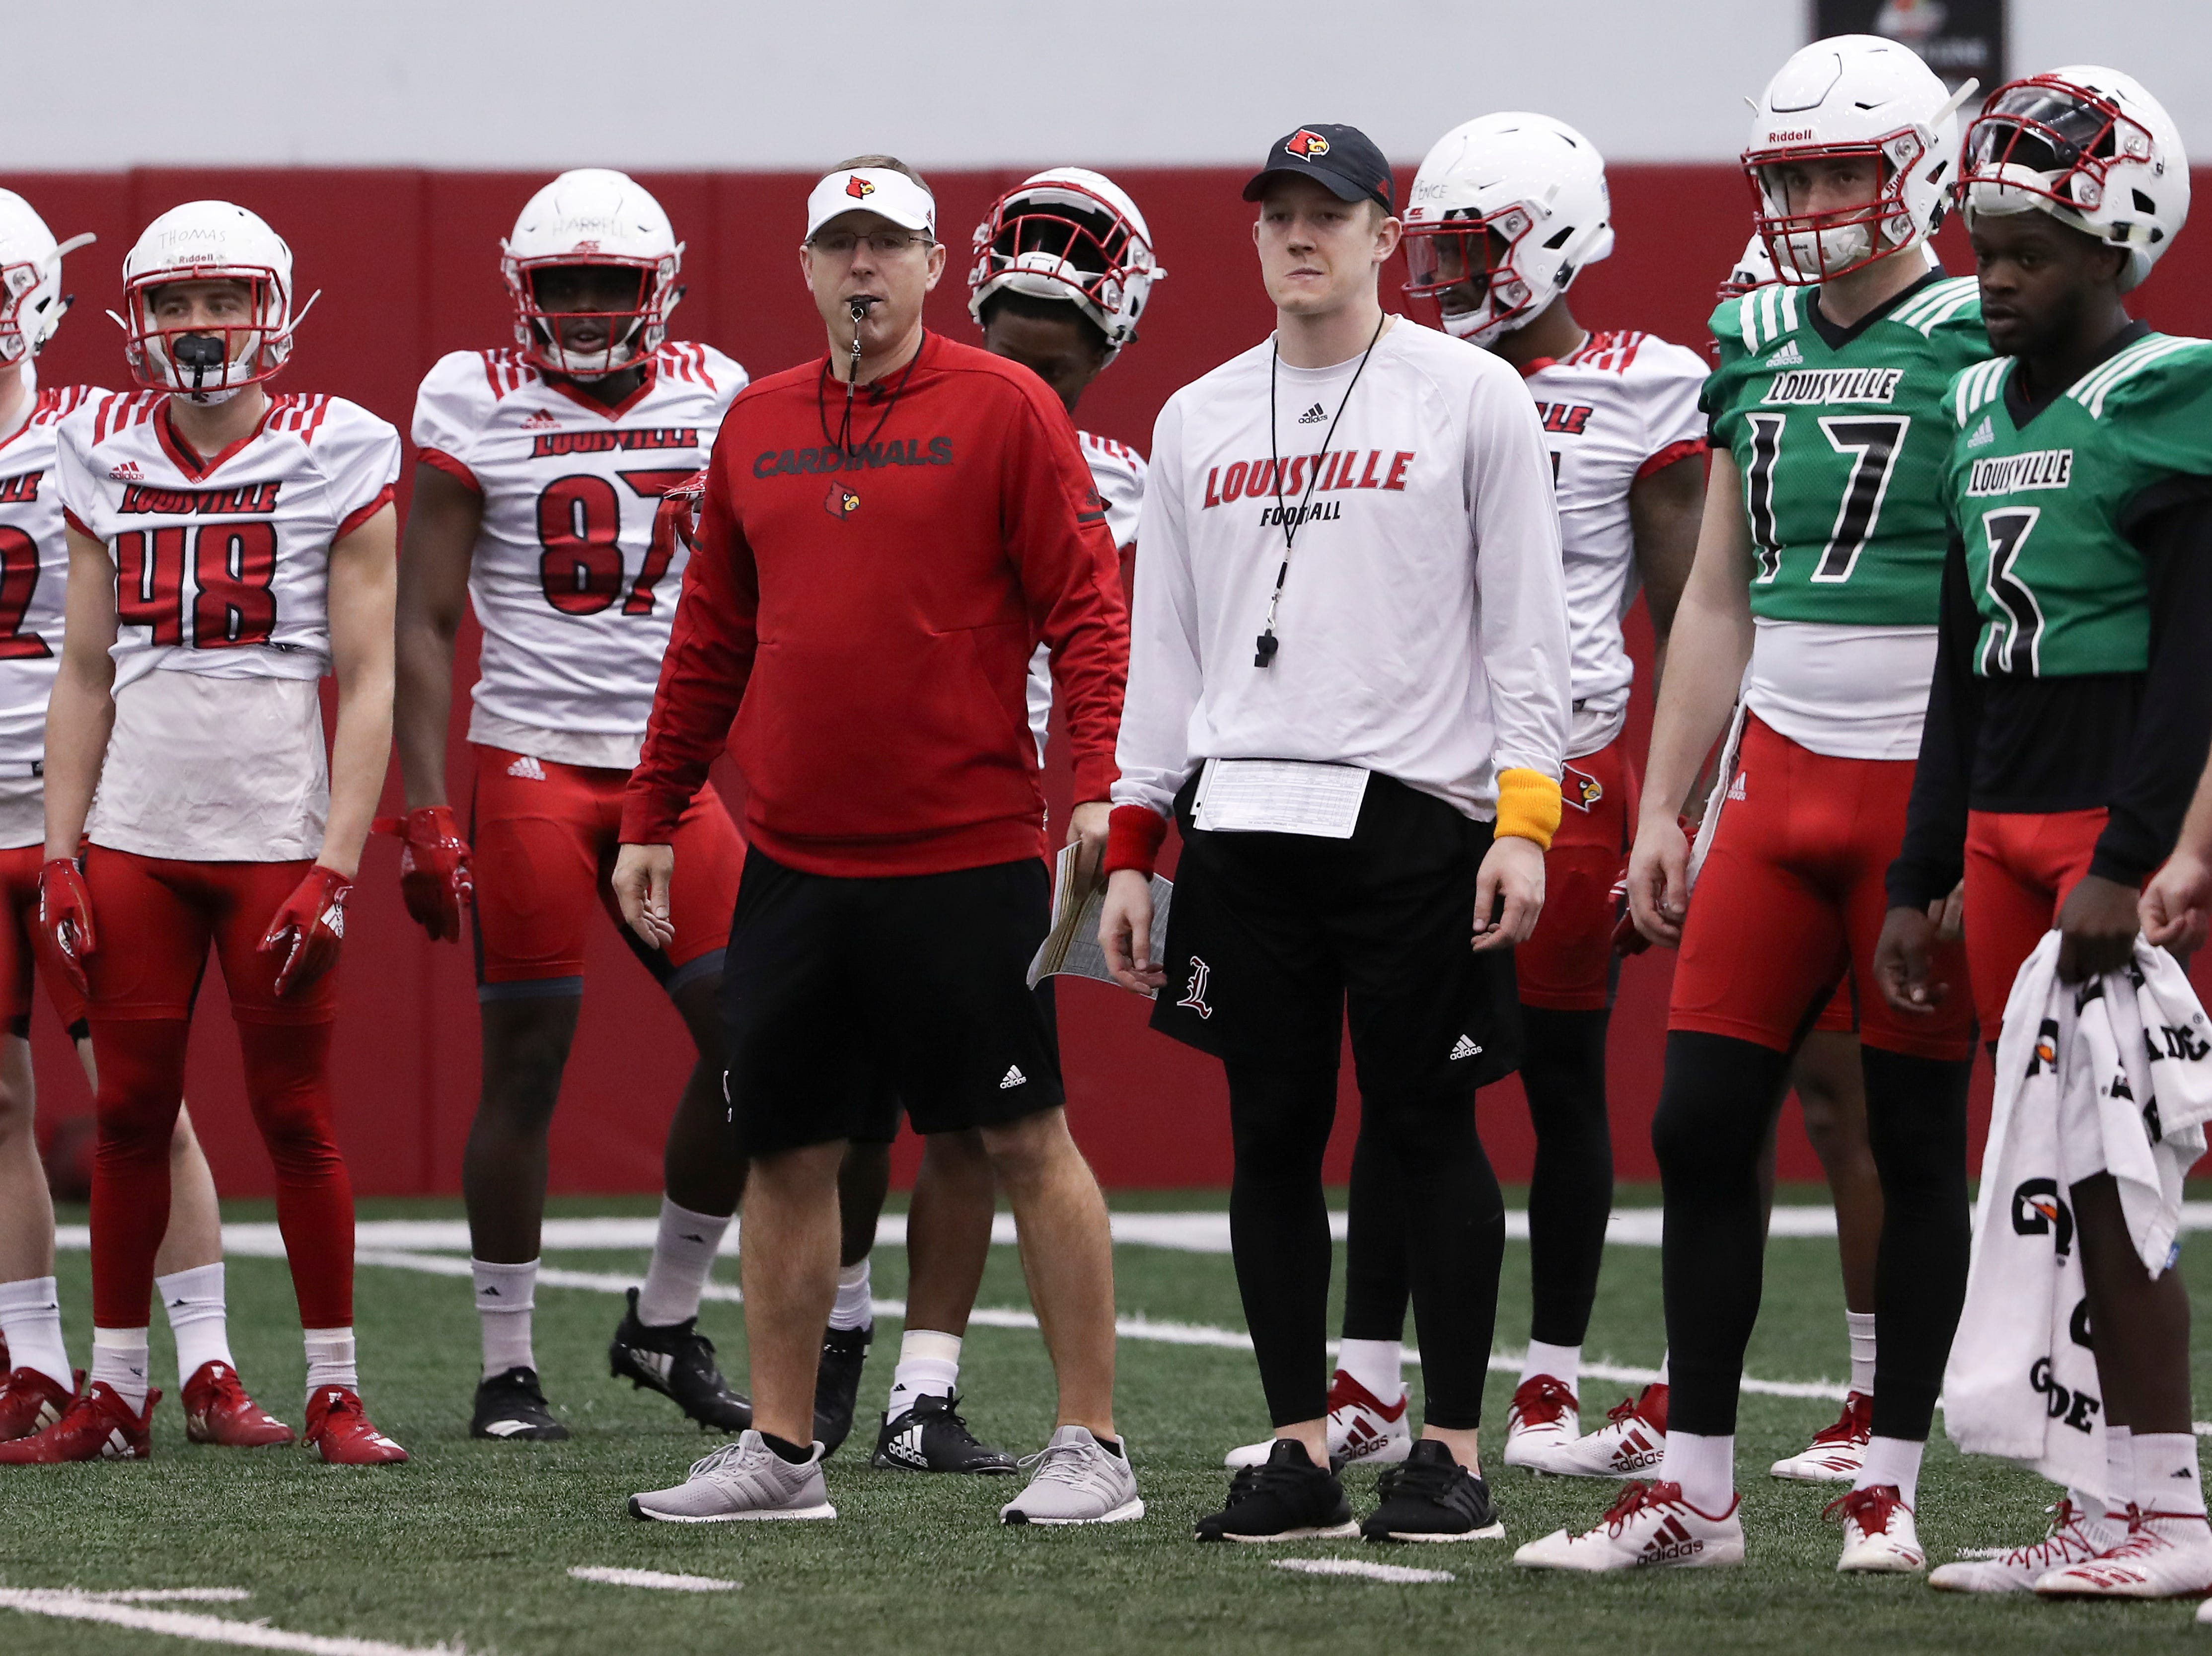 U of L head coach Scott Satterfield, center with whistle in mouth, observed the offense during practice at the Trager Center.